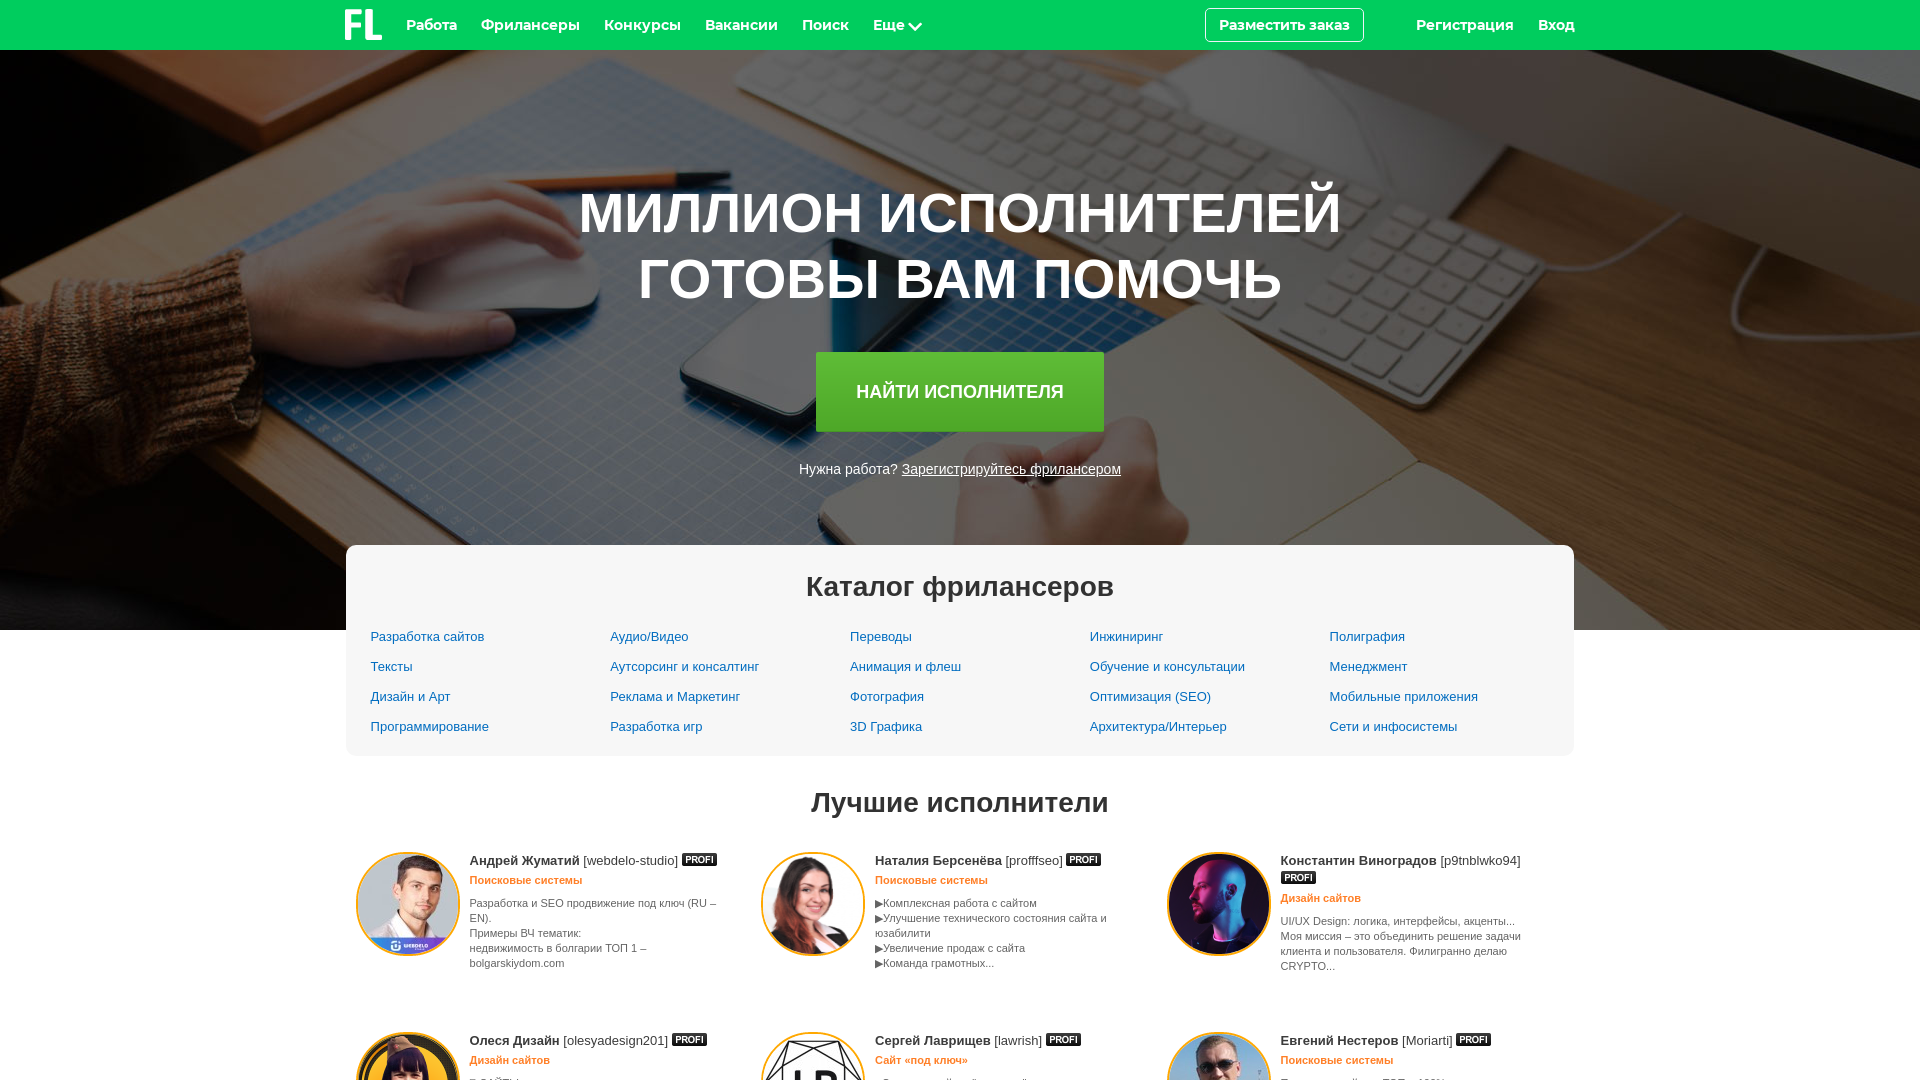 FL.Ru website